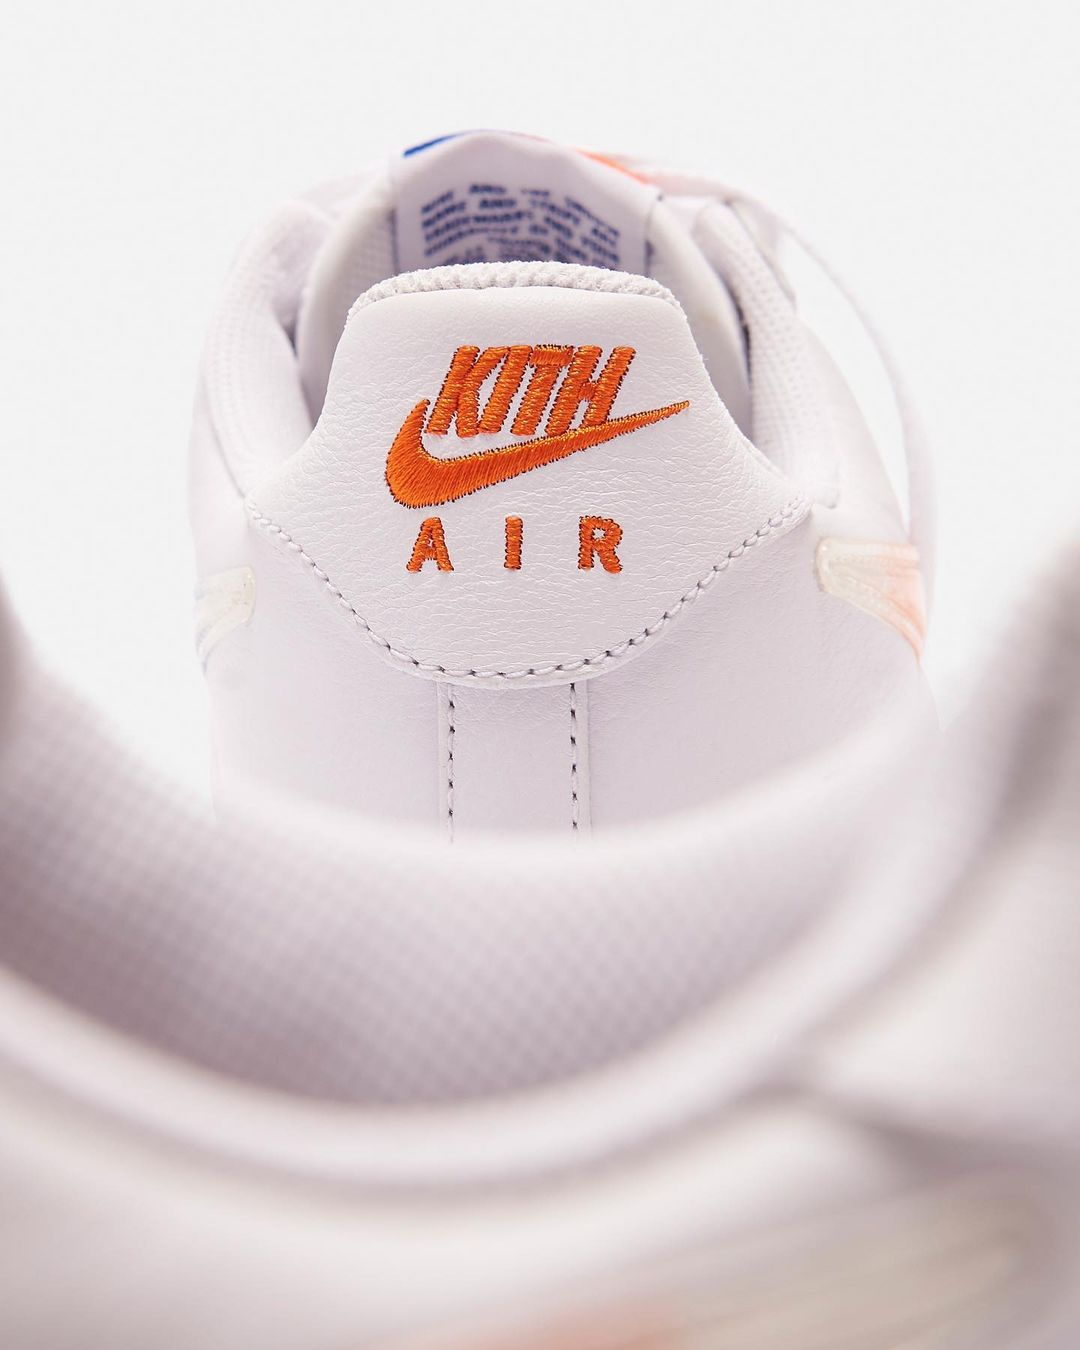 nike-kith-air-force-1-low-nyc-cz7928-001-110-release-20201218